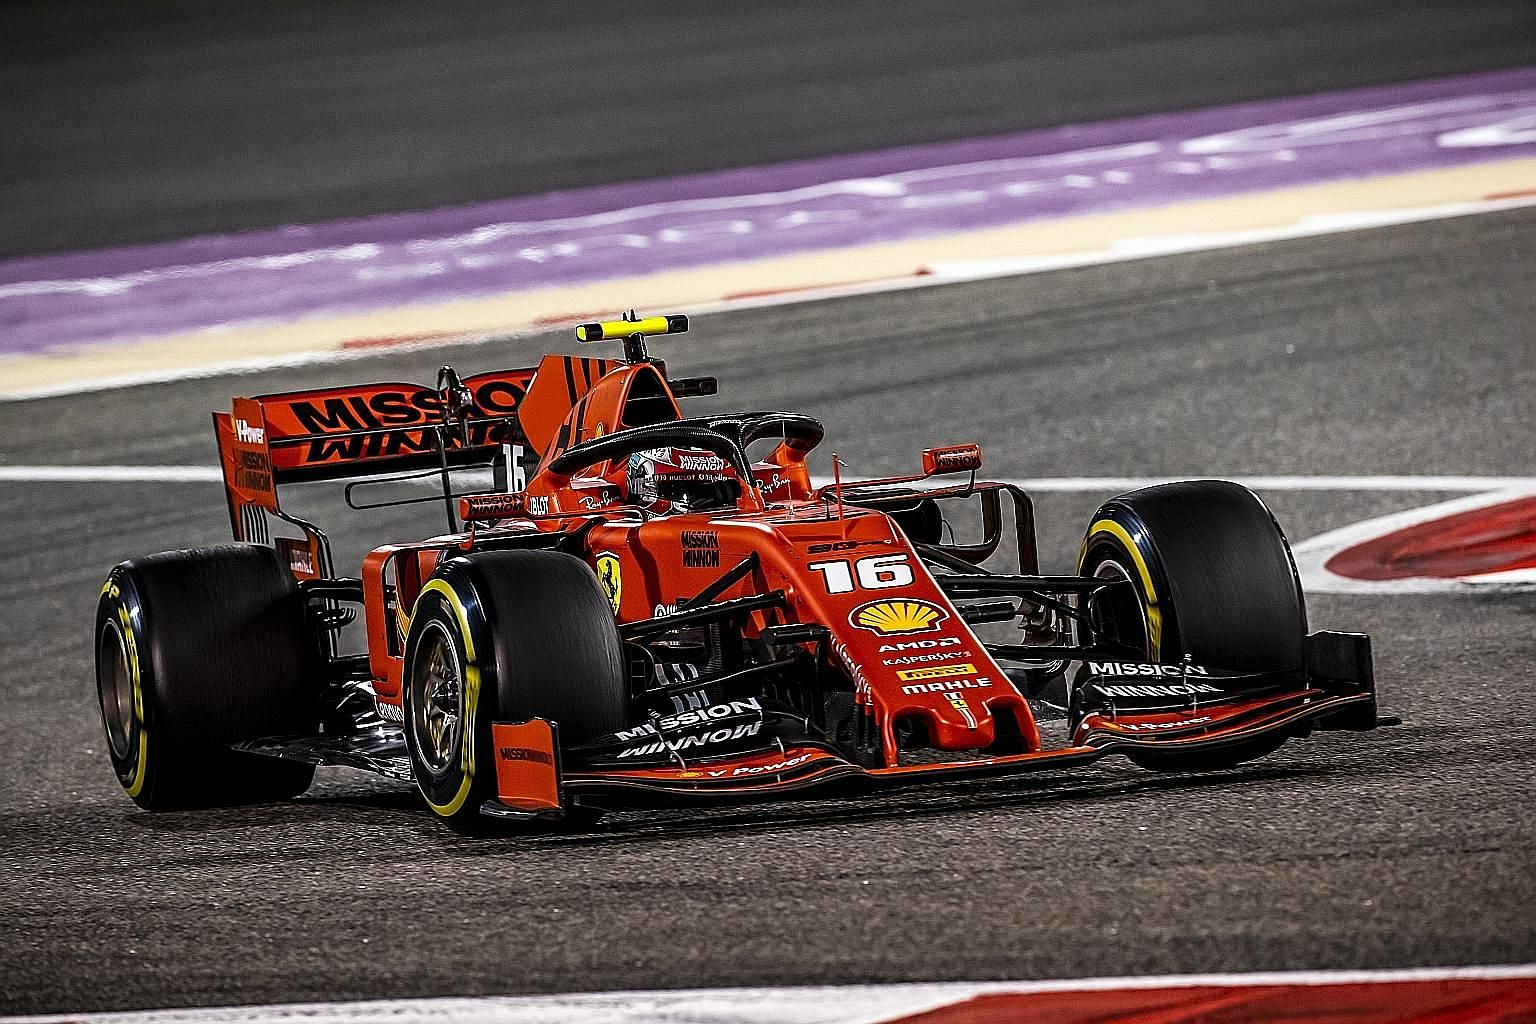 Mercedes team boss Toto Wolff believes Ferrari driver Charles Leclerc is a future world champion who has the right combination of speed, personality and temperament.